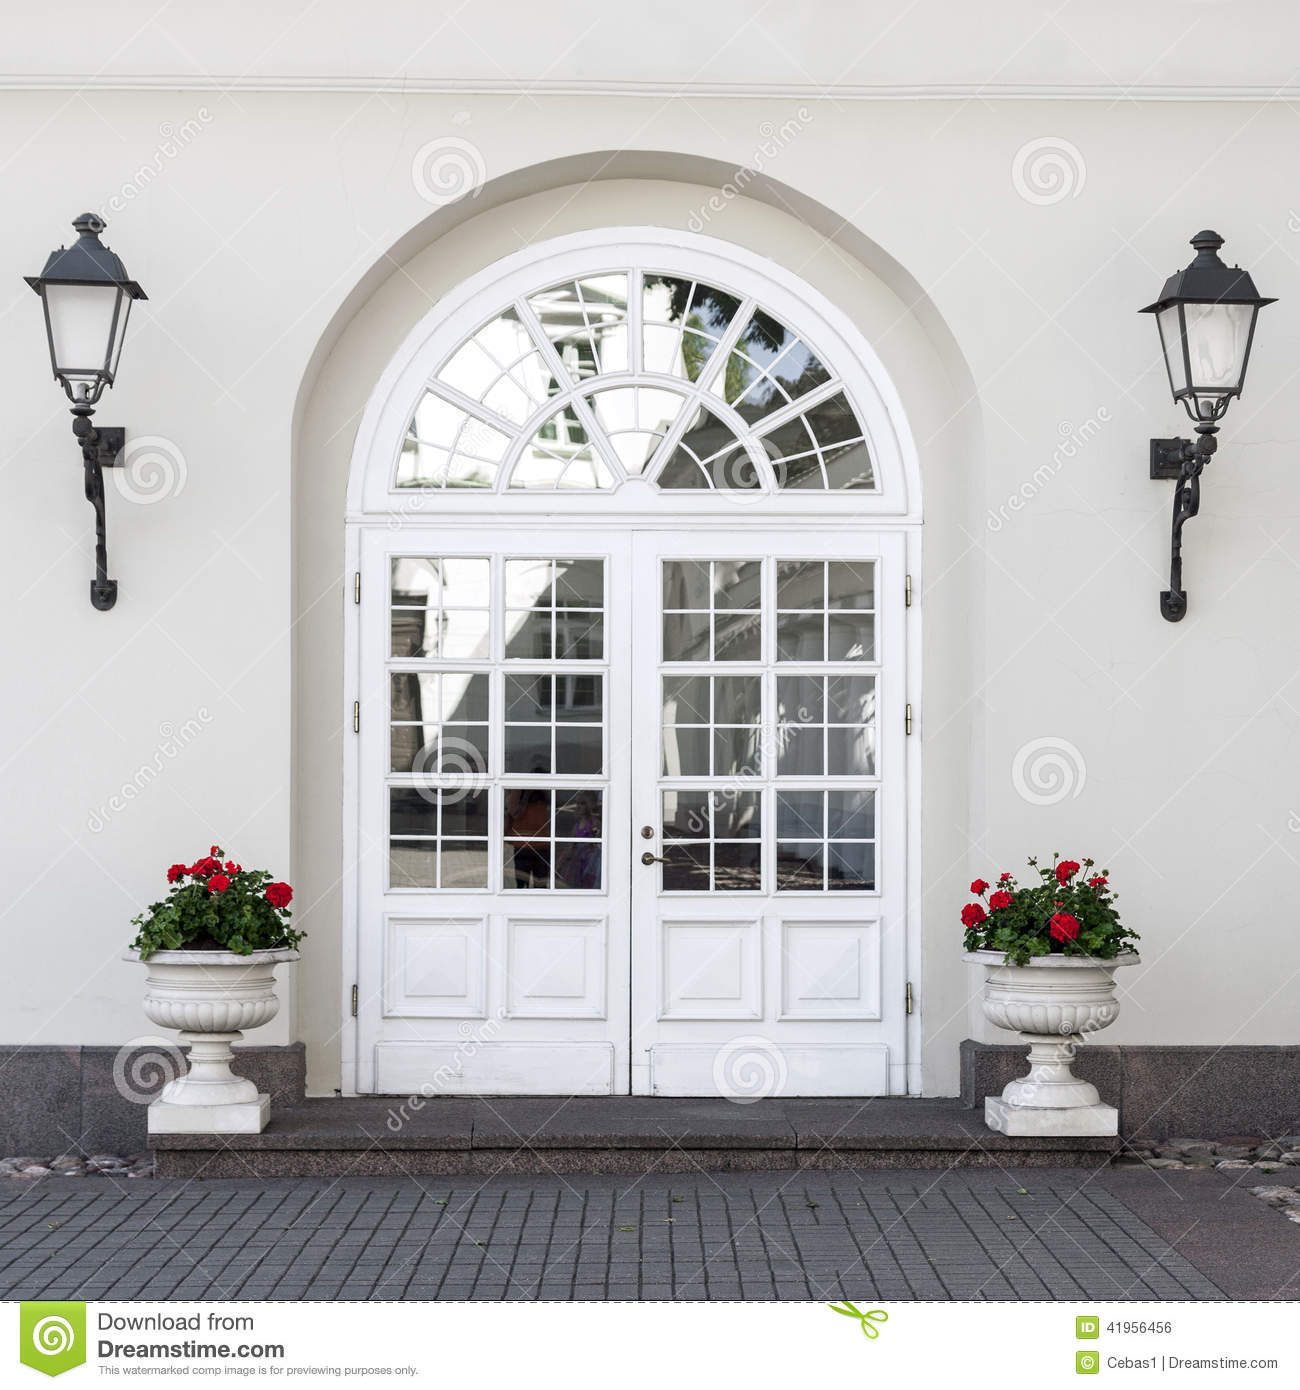 Image Result For Double Paned Windows